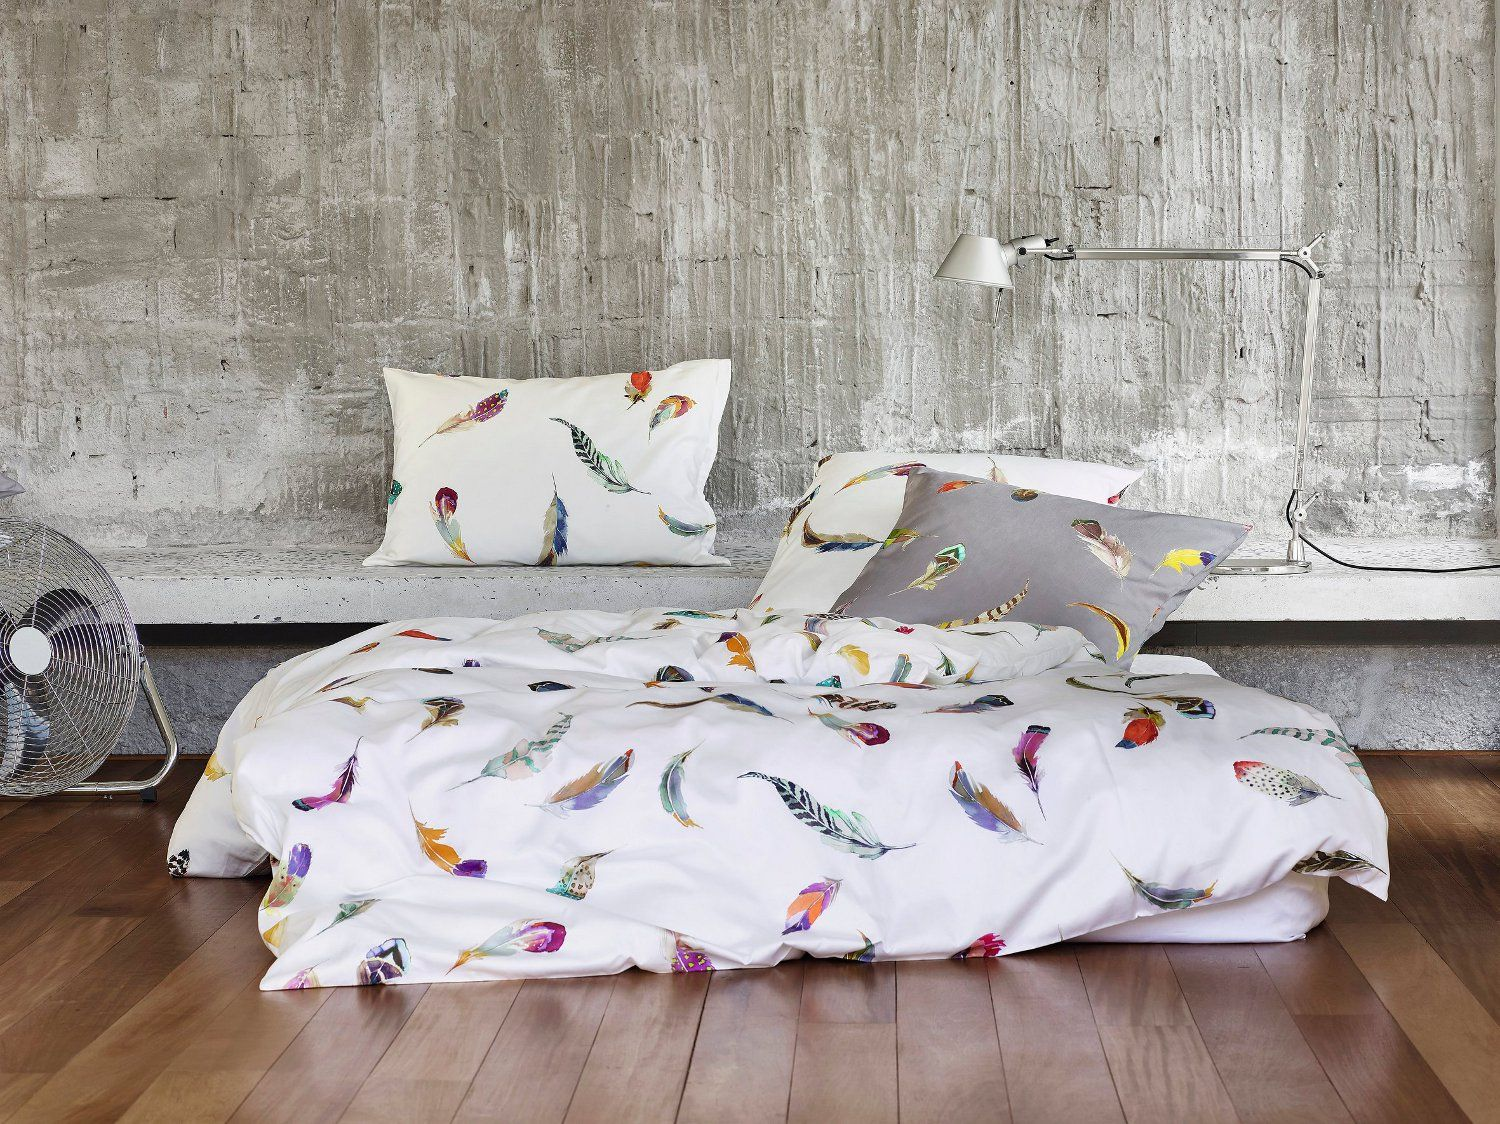 full duvet queen set products fullxfull parrot bird cover white twin king il bedding